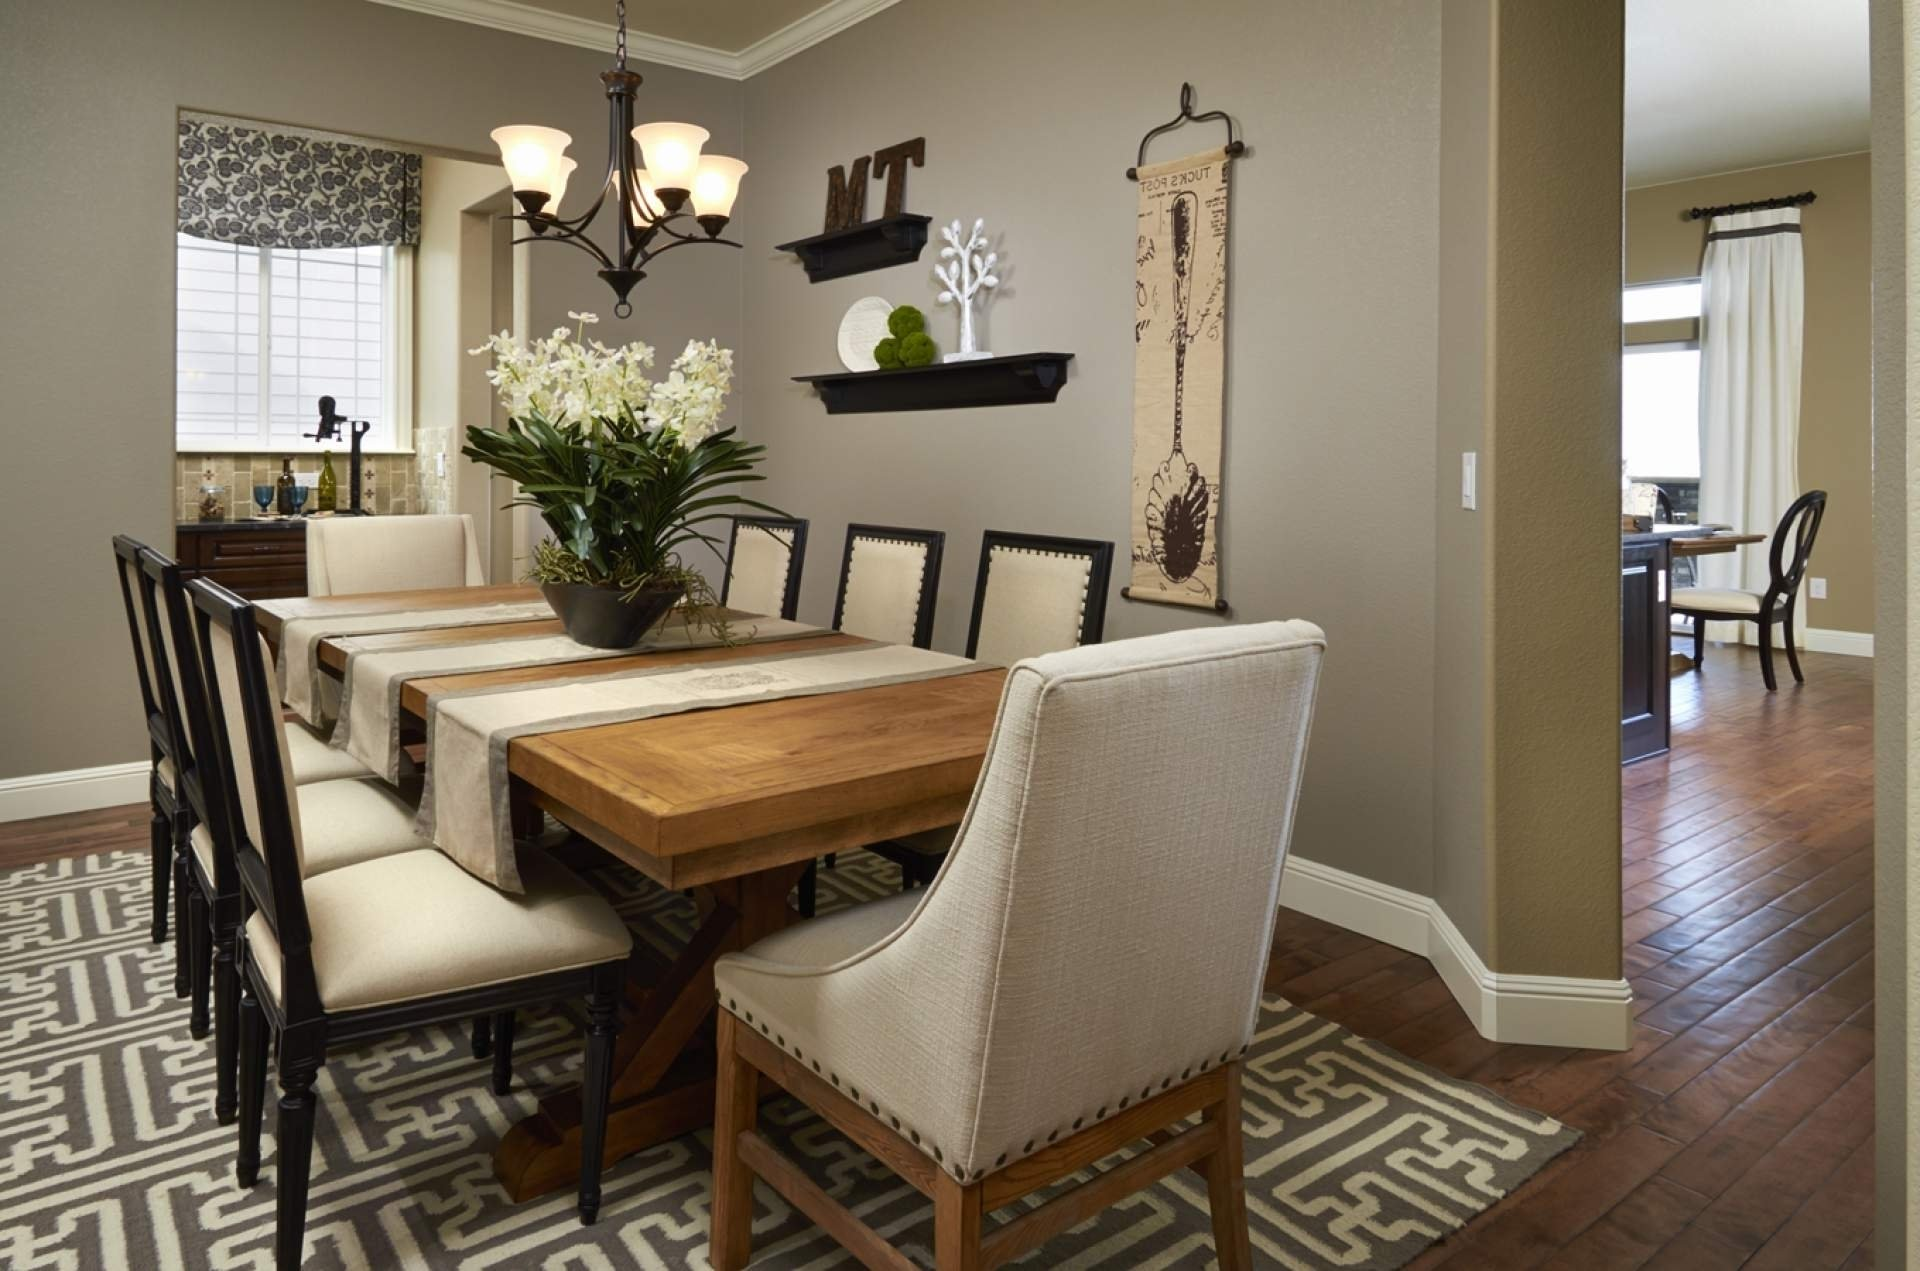 10 Fashionable Decorating Ideas For Dining Room decorating ideas for dining room walls new picture image on bbfedeec 1 2020